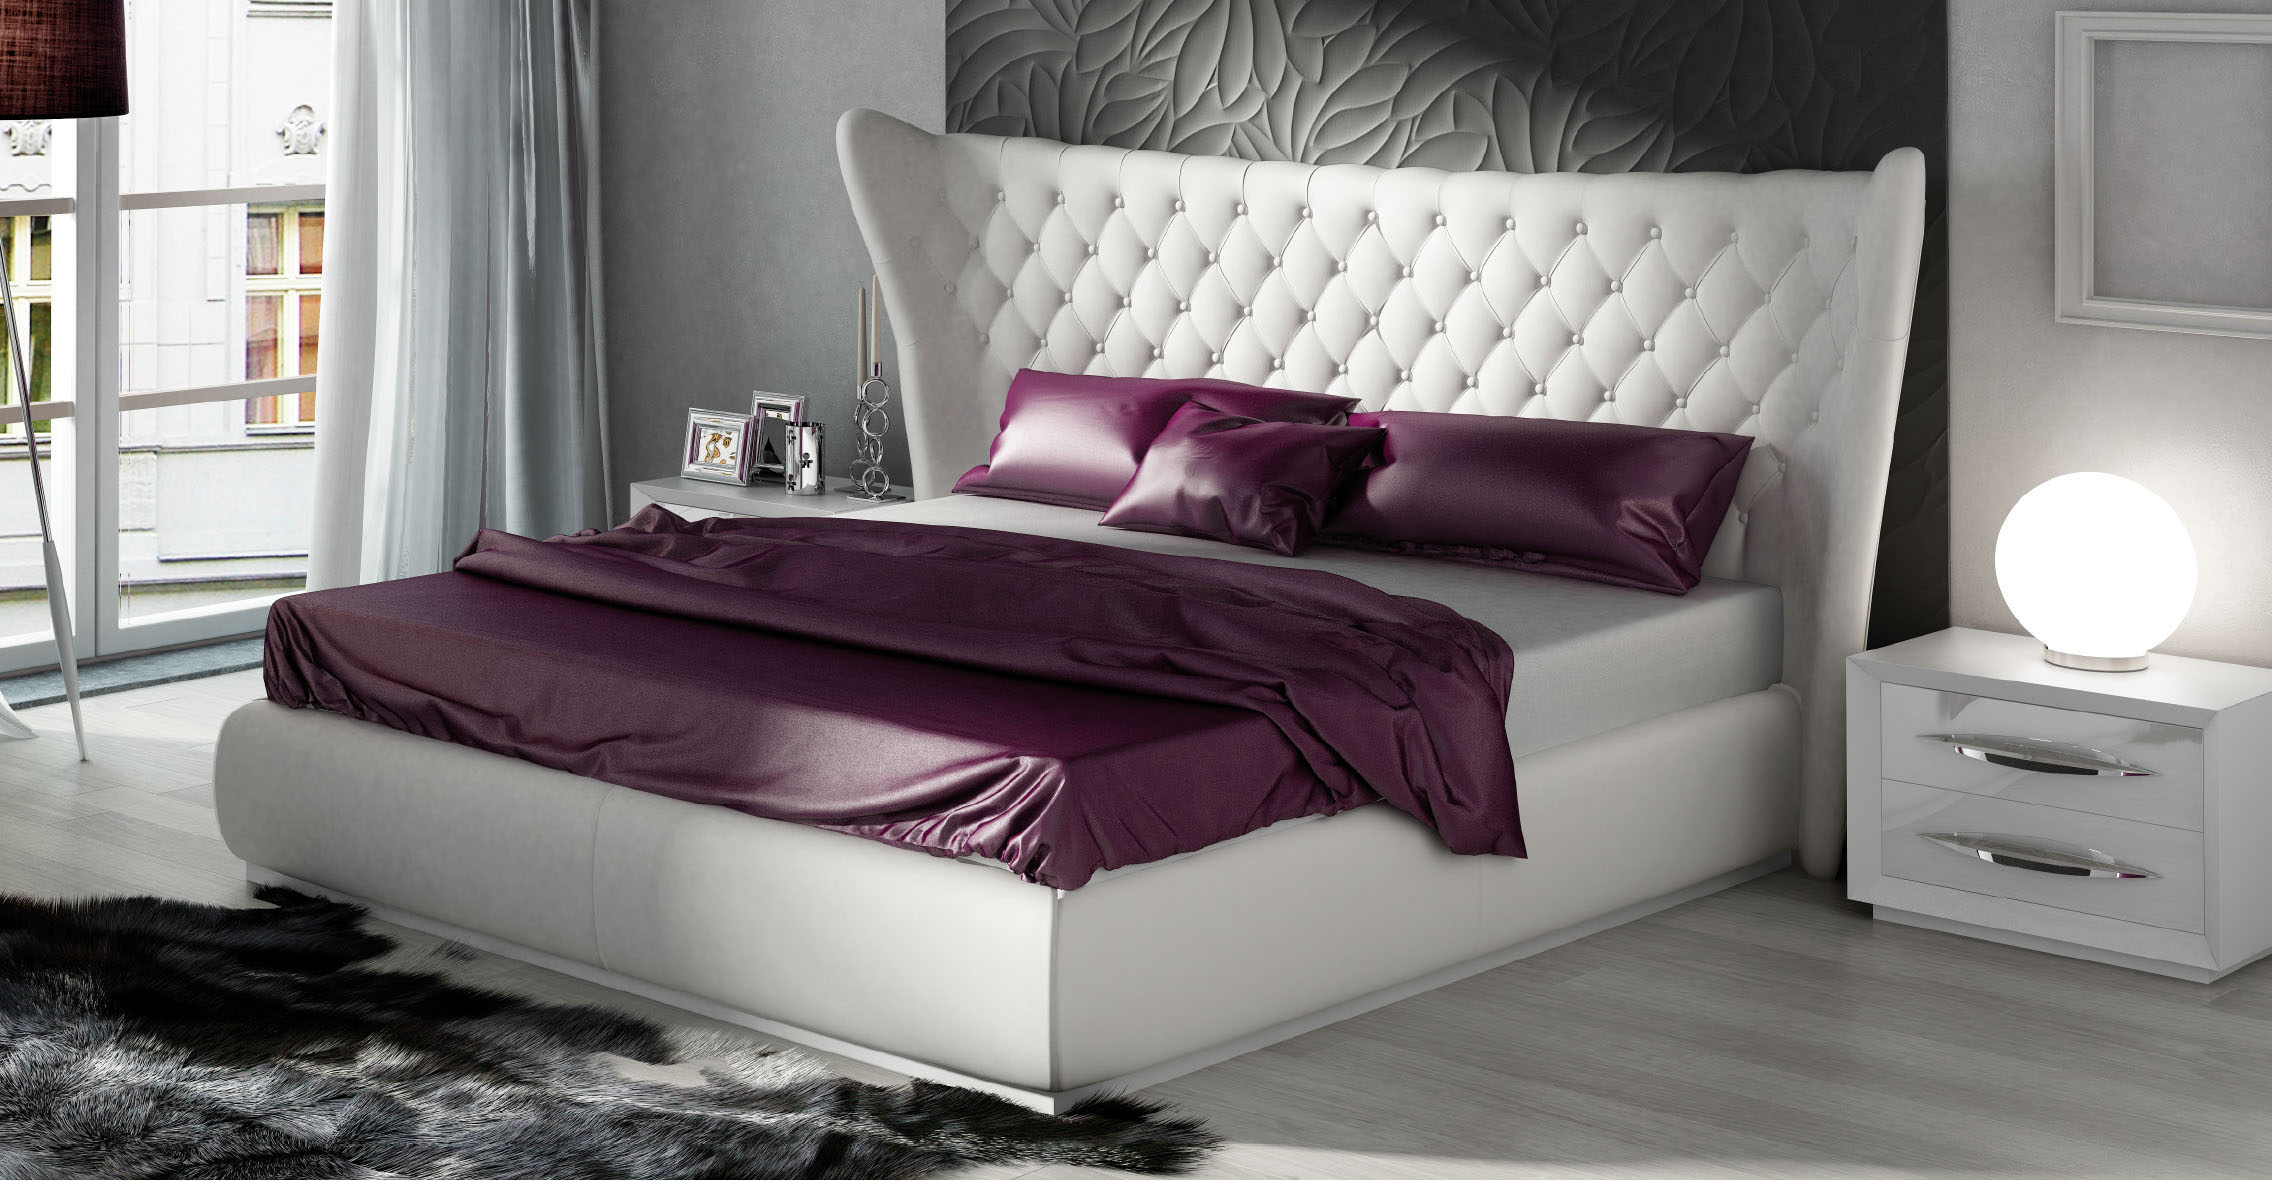 miami bedgroup modern bedrooms bedroom furniture